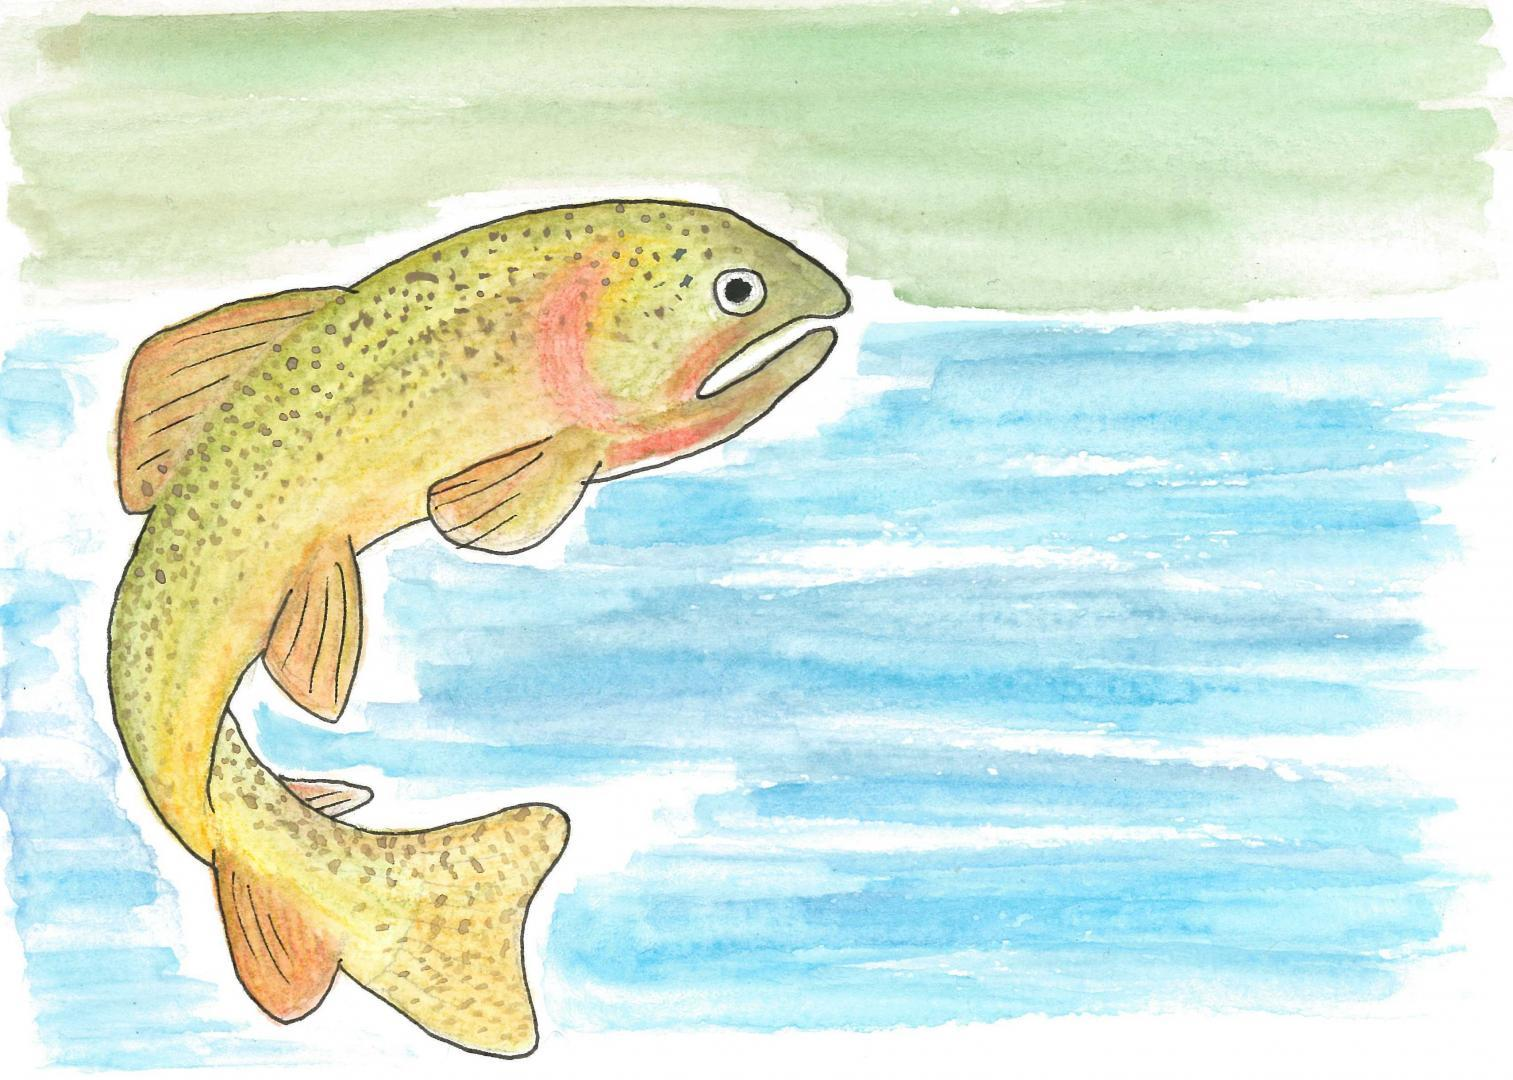 Snake River Fine-Spotted Cutthroat Trout © KIT West Designs